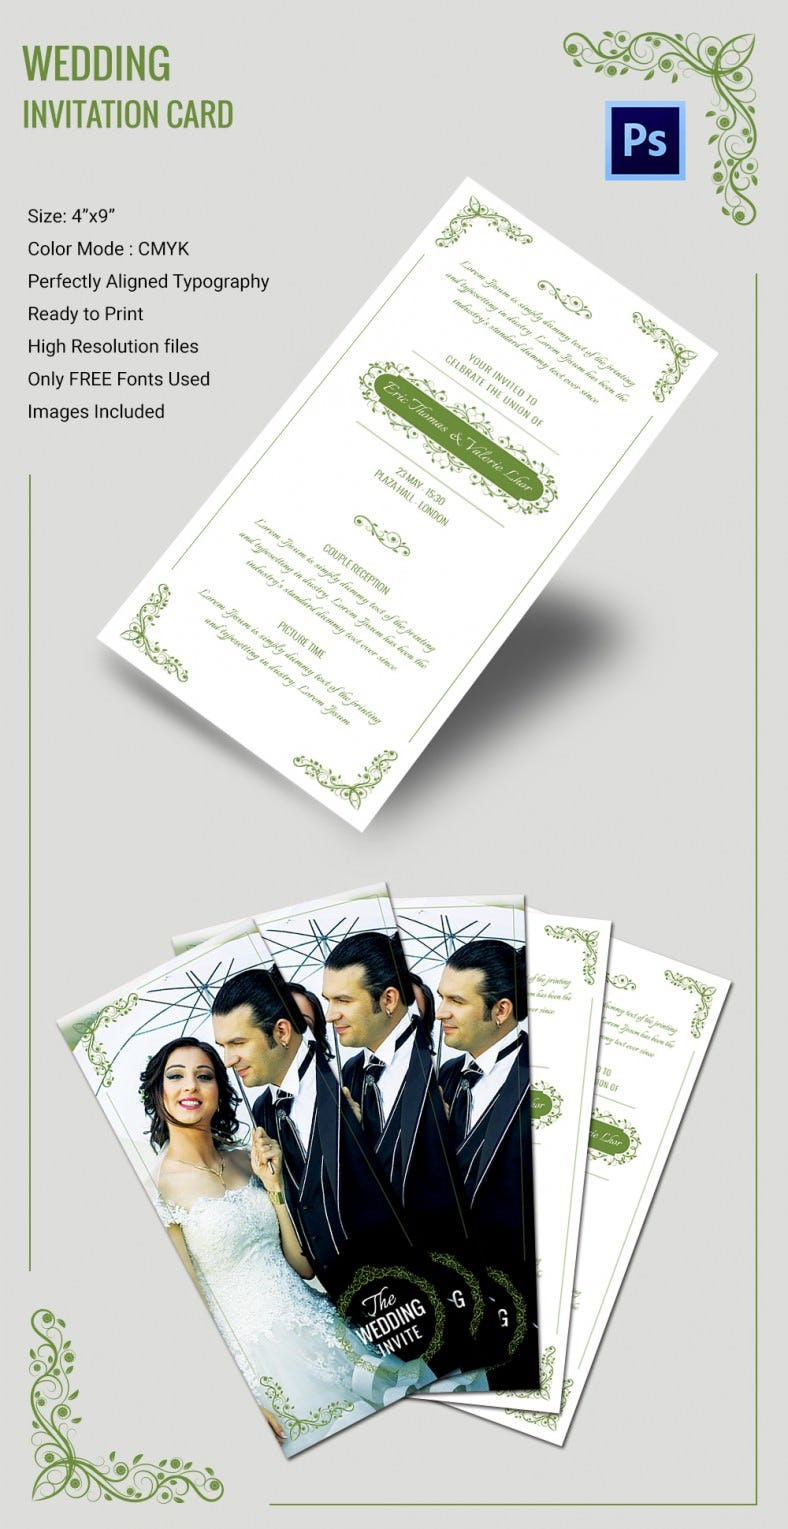 Wedding_invitationcard